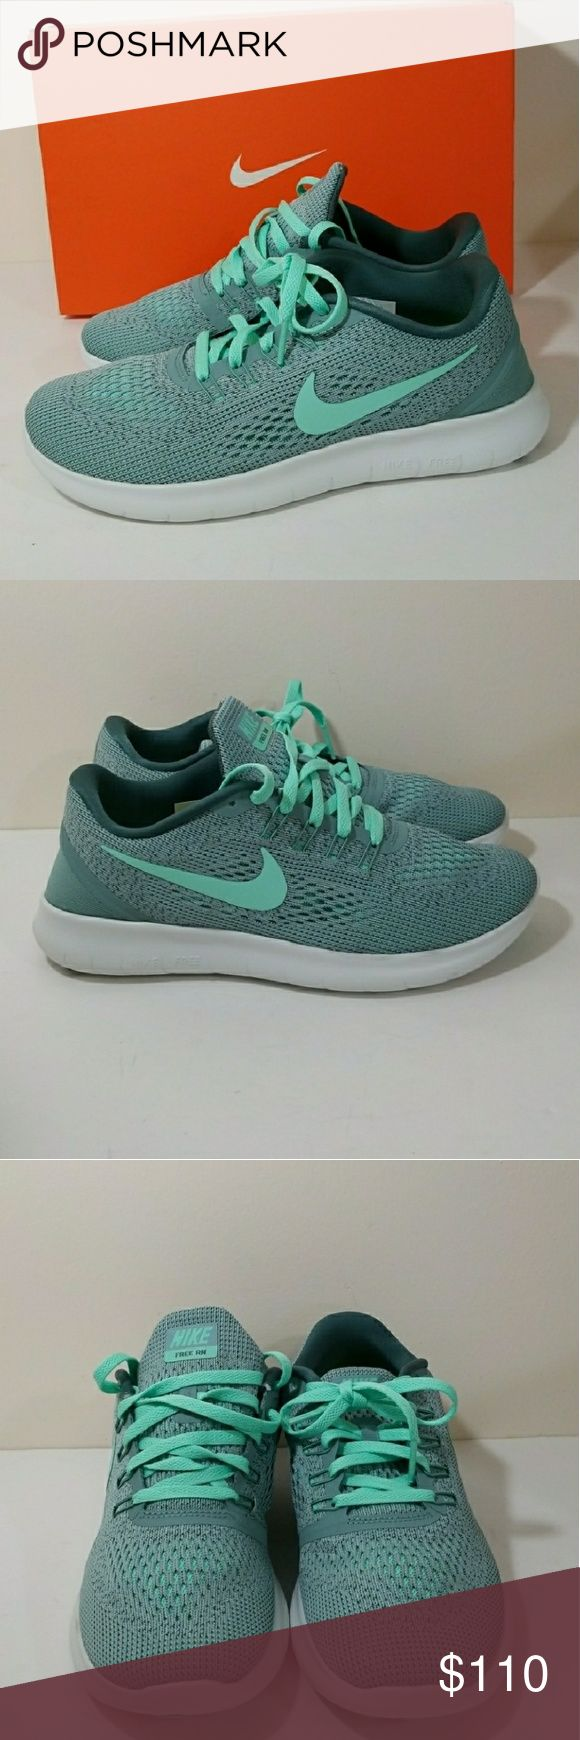 5ec6f451bdcd Nike Free Run Mint Green Tiffany Blue size 9 NWB Nike Shoes Sneakers